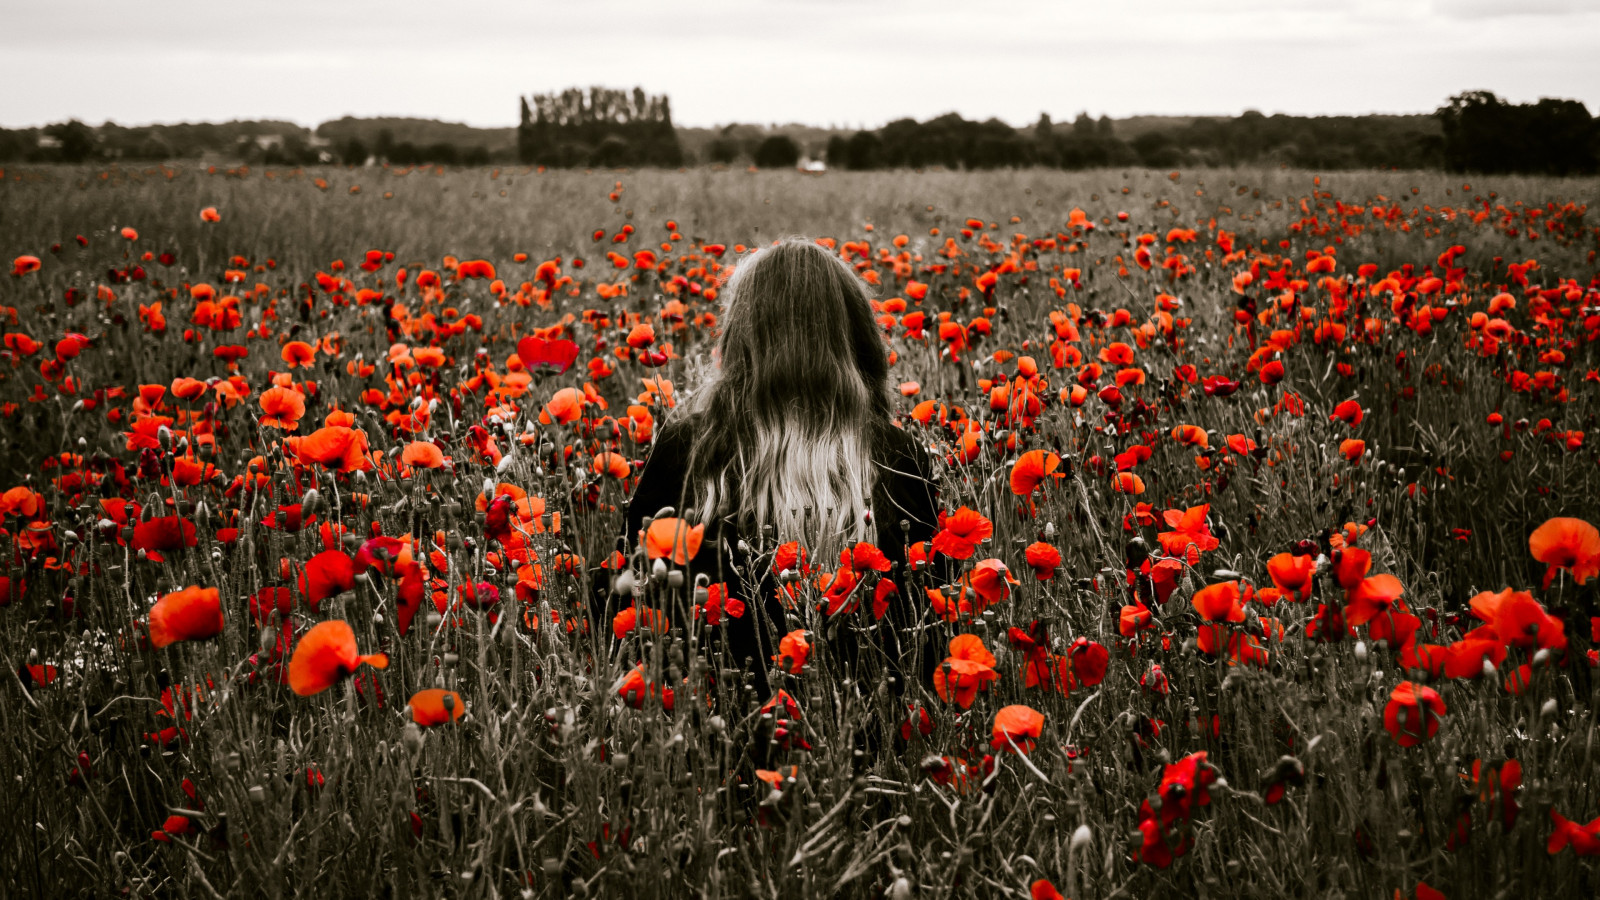 Girl in the field with red poppies wallpaper 1600x900